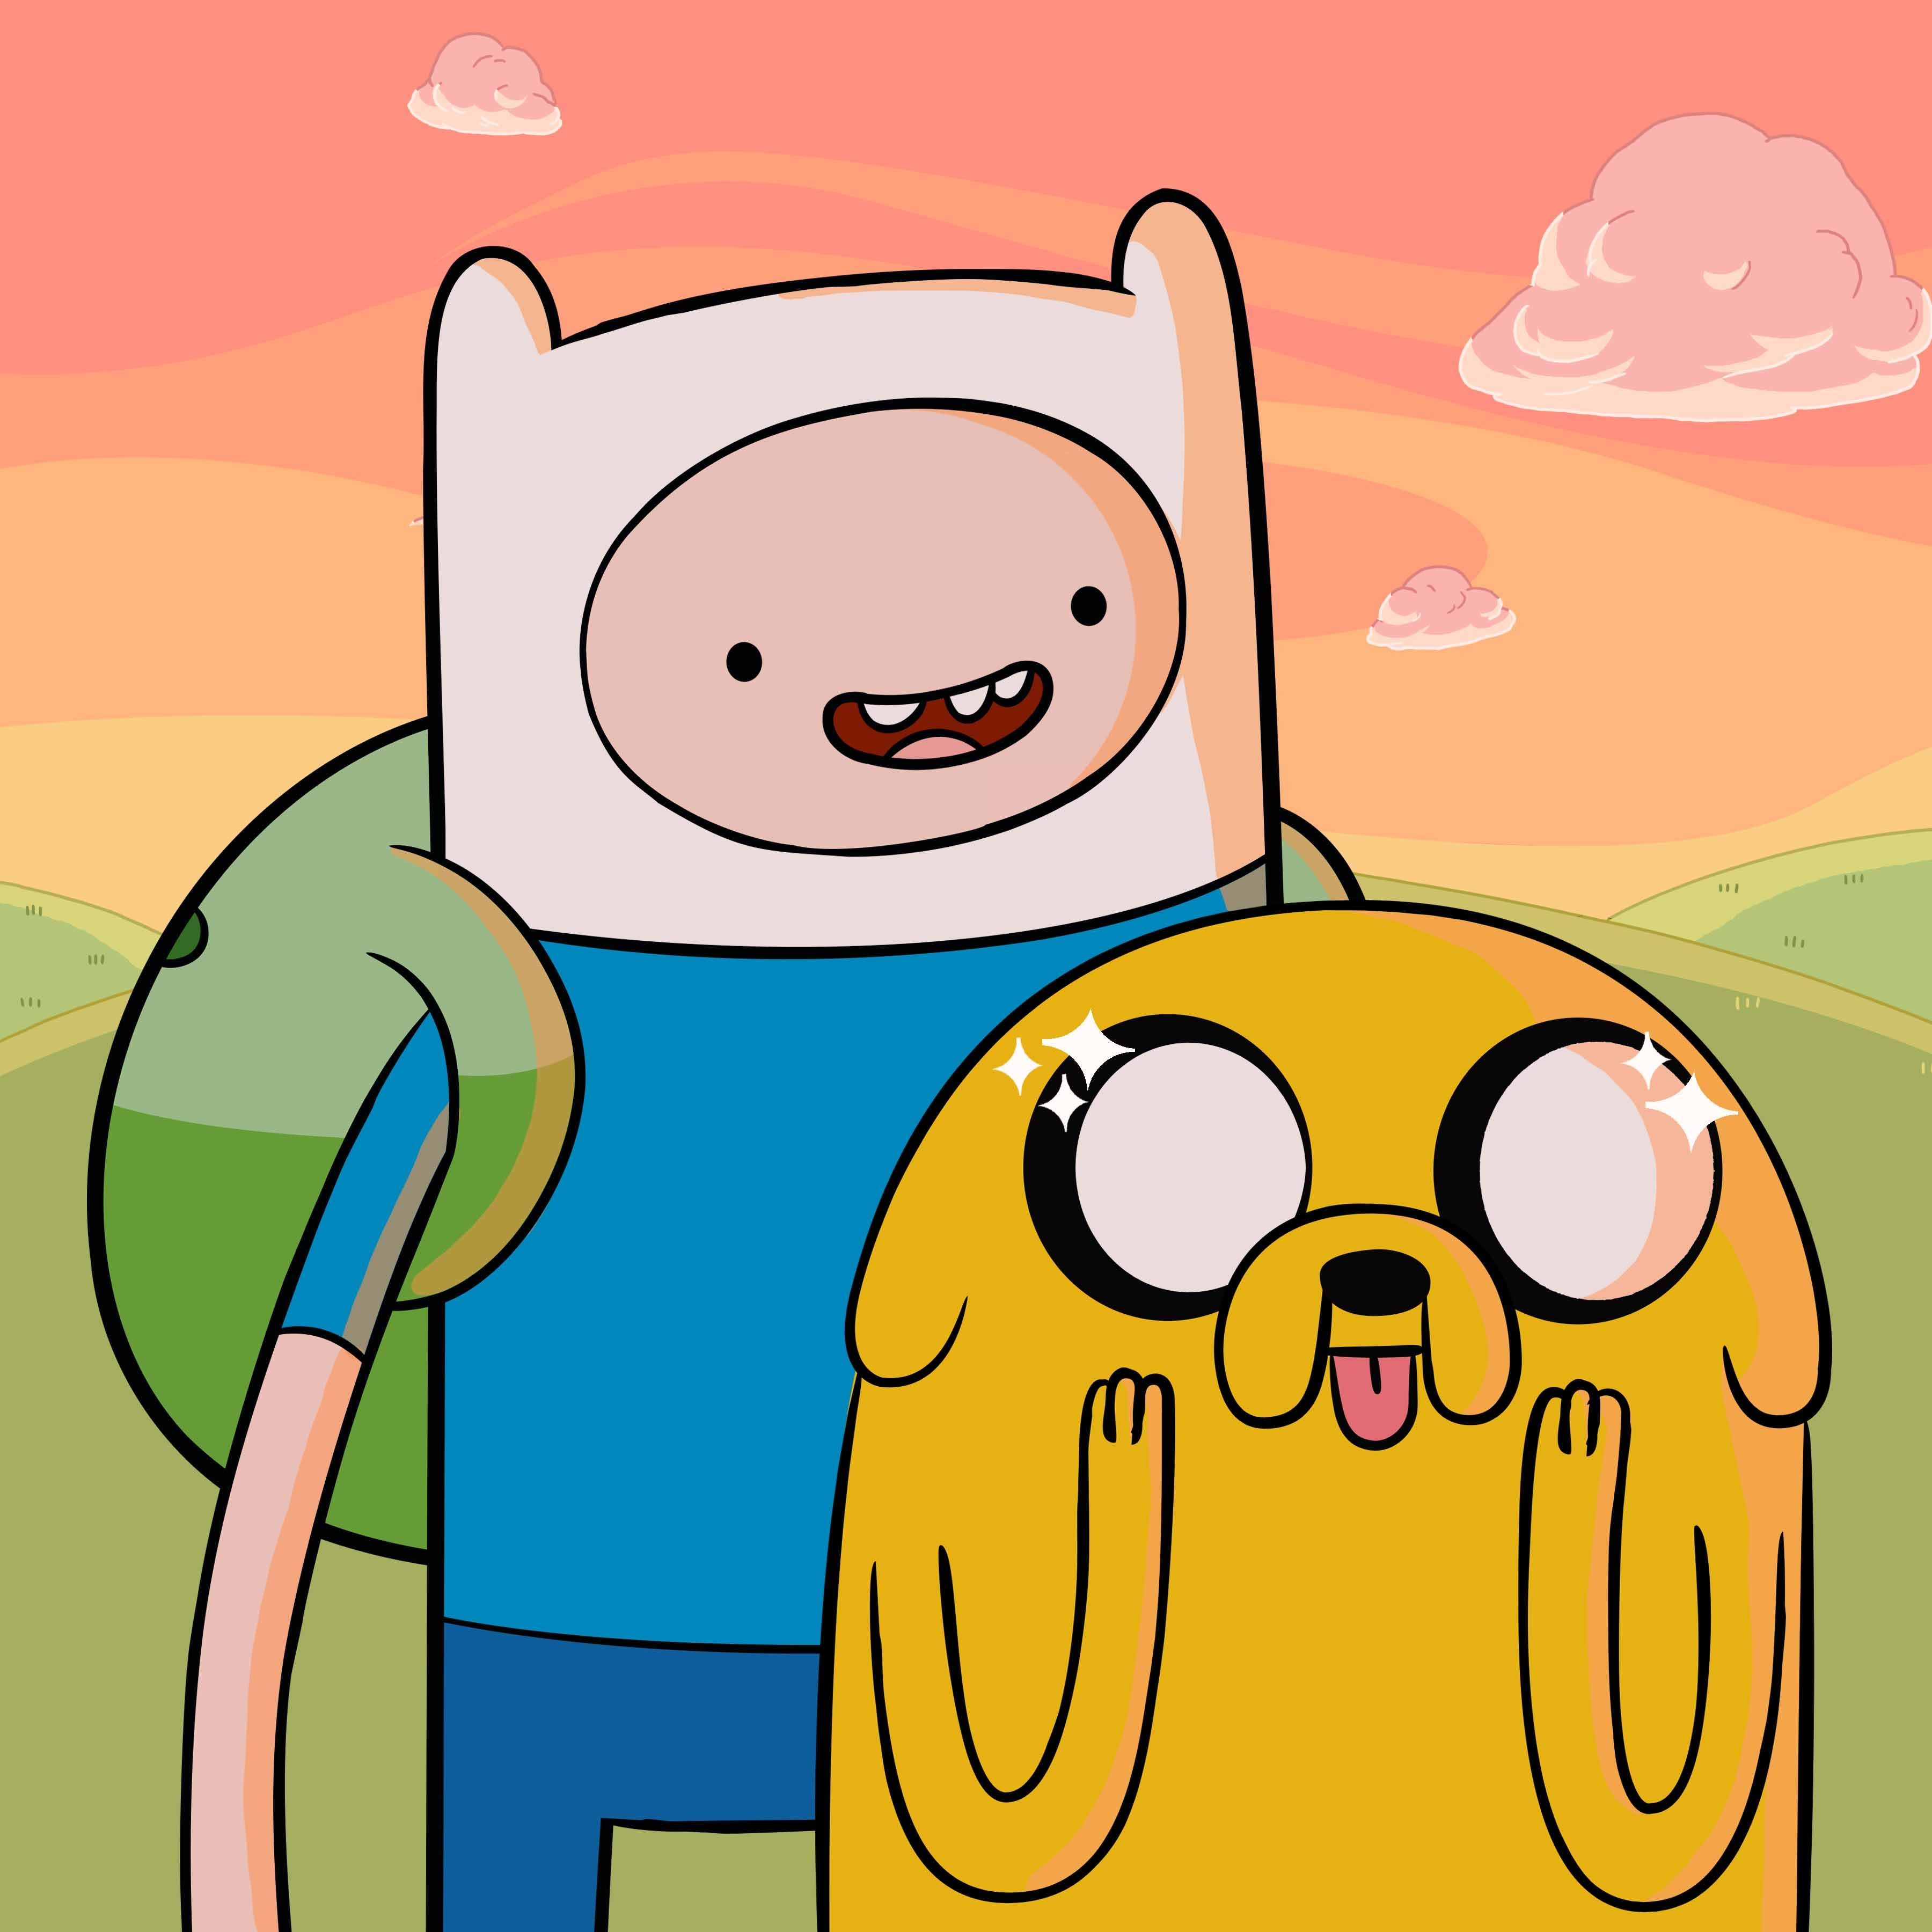 Cartoon Network clipart adventure time Adult Adventure Broadfield Network's Time's